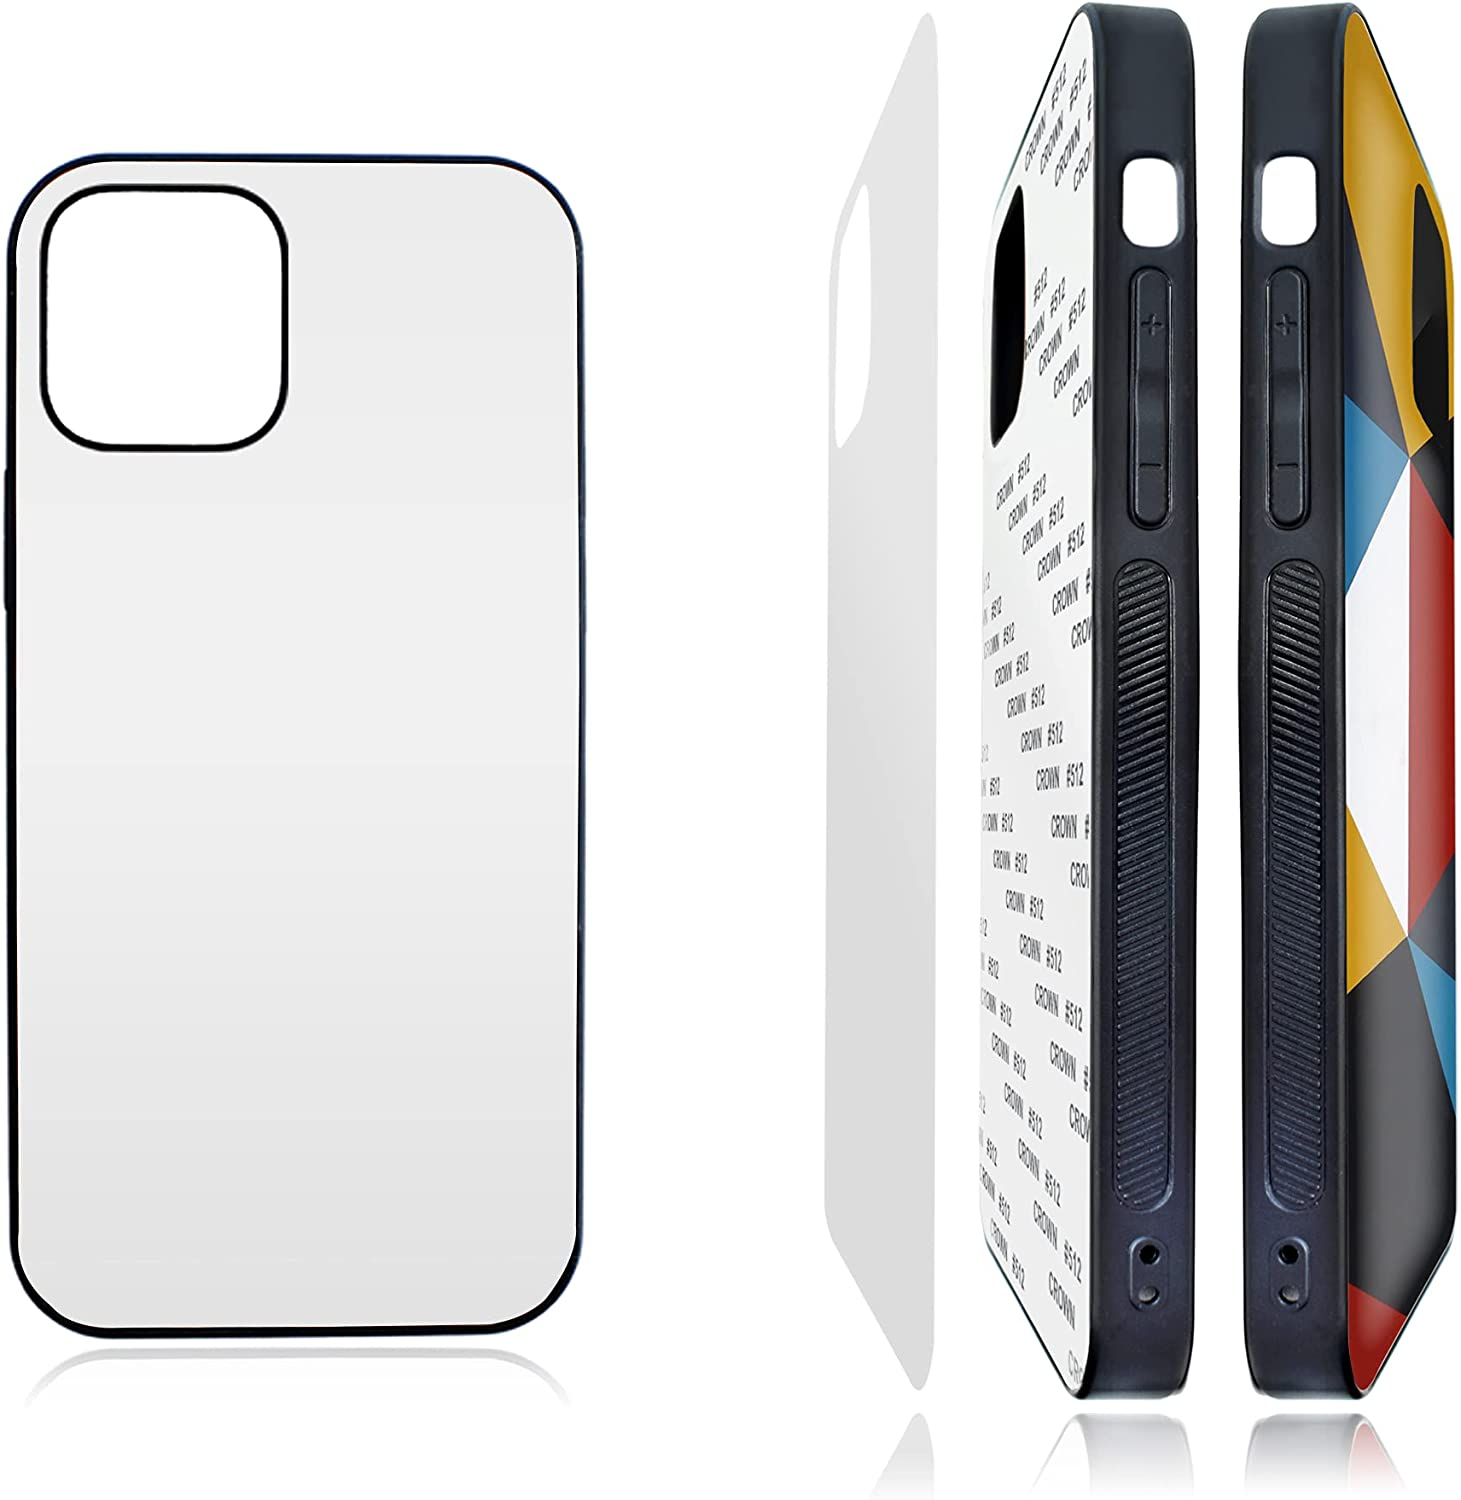 WITT CASE 5 PCS Sublimation Phone Case Blanks for iPhone 12/12 Pro, Printable, 2D, 6.1 Inch (2020), Supports Wireless Charging, Matte, DIY Personalized Heat Press iPhone Cell Cover